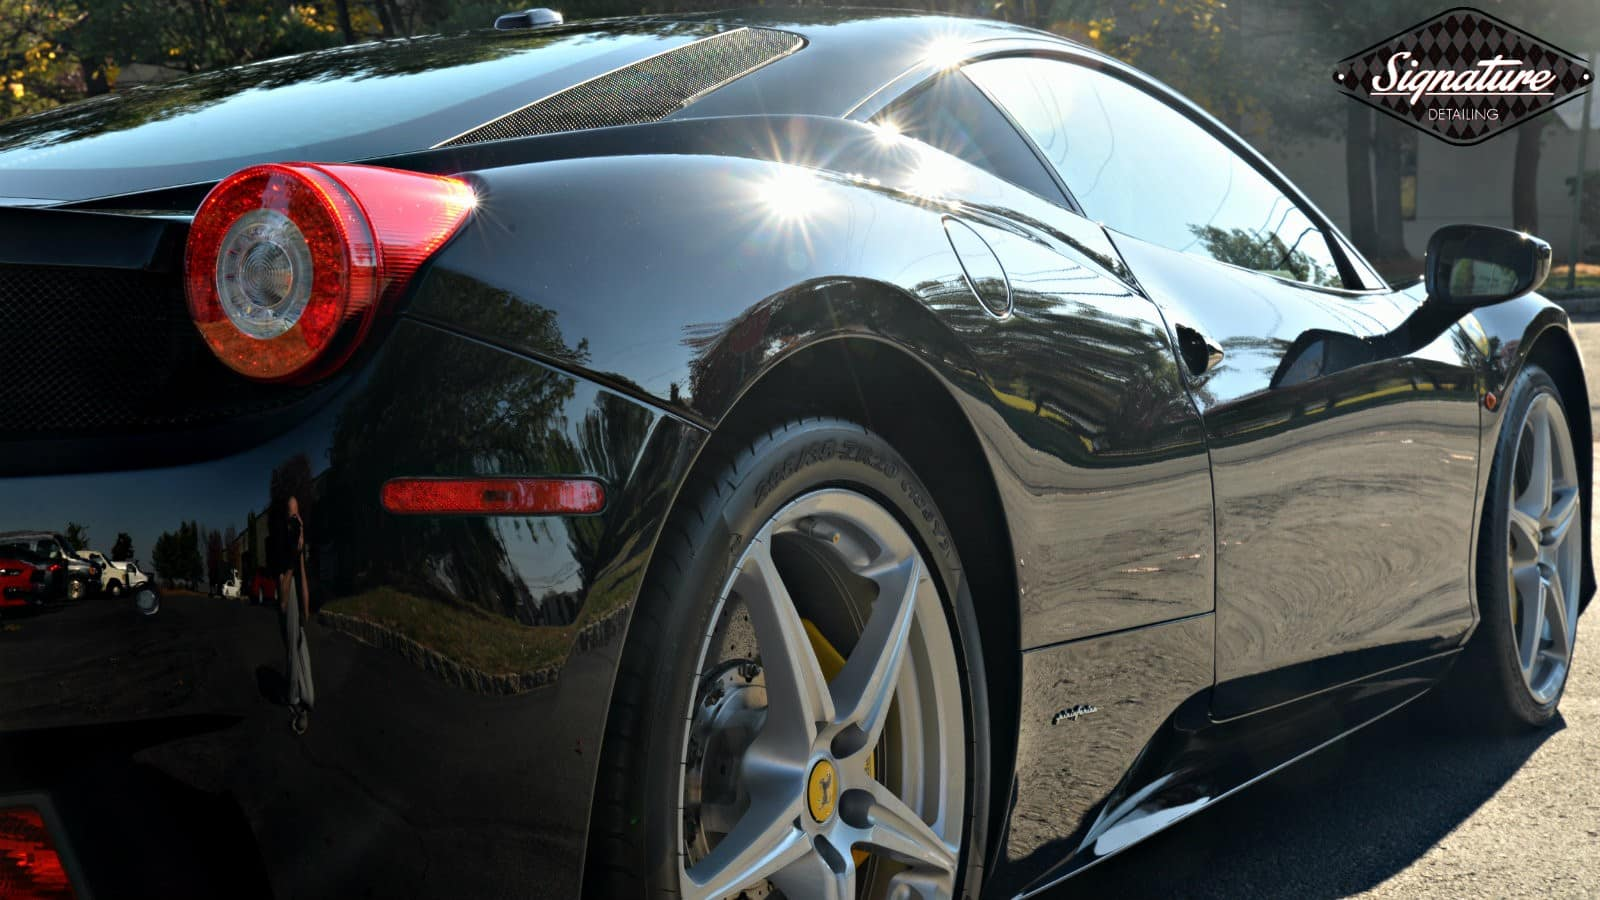 This Ferrari 458 was fully corrected and protected with Xpel Ultimate PPF by Signature Detailing NJ.